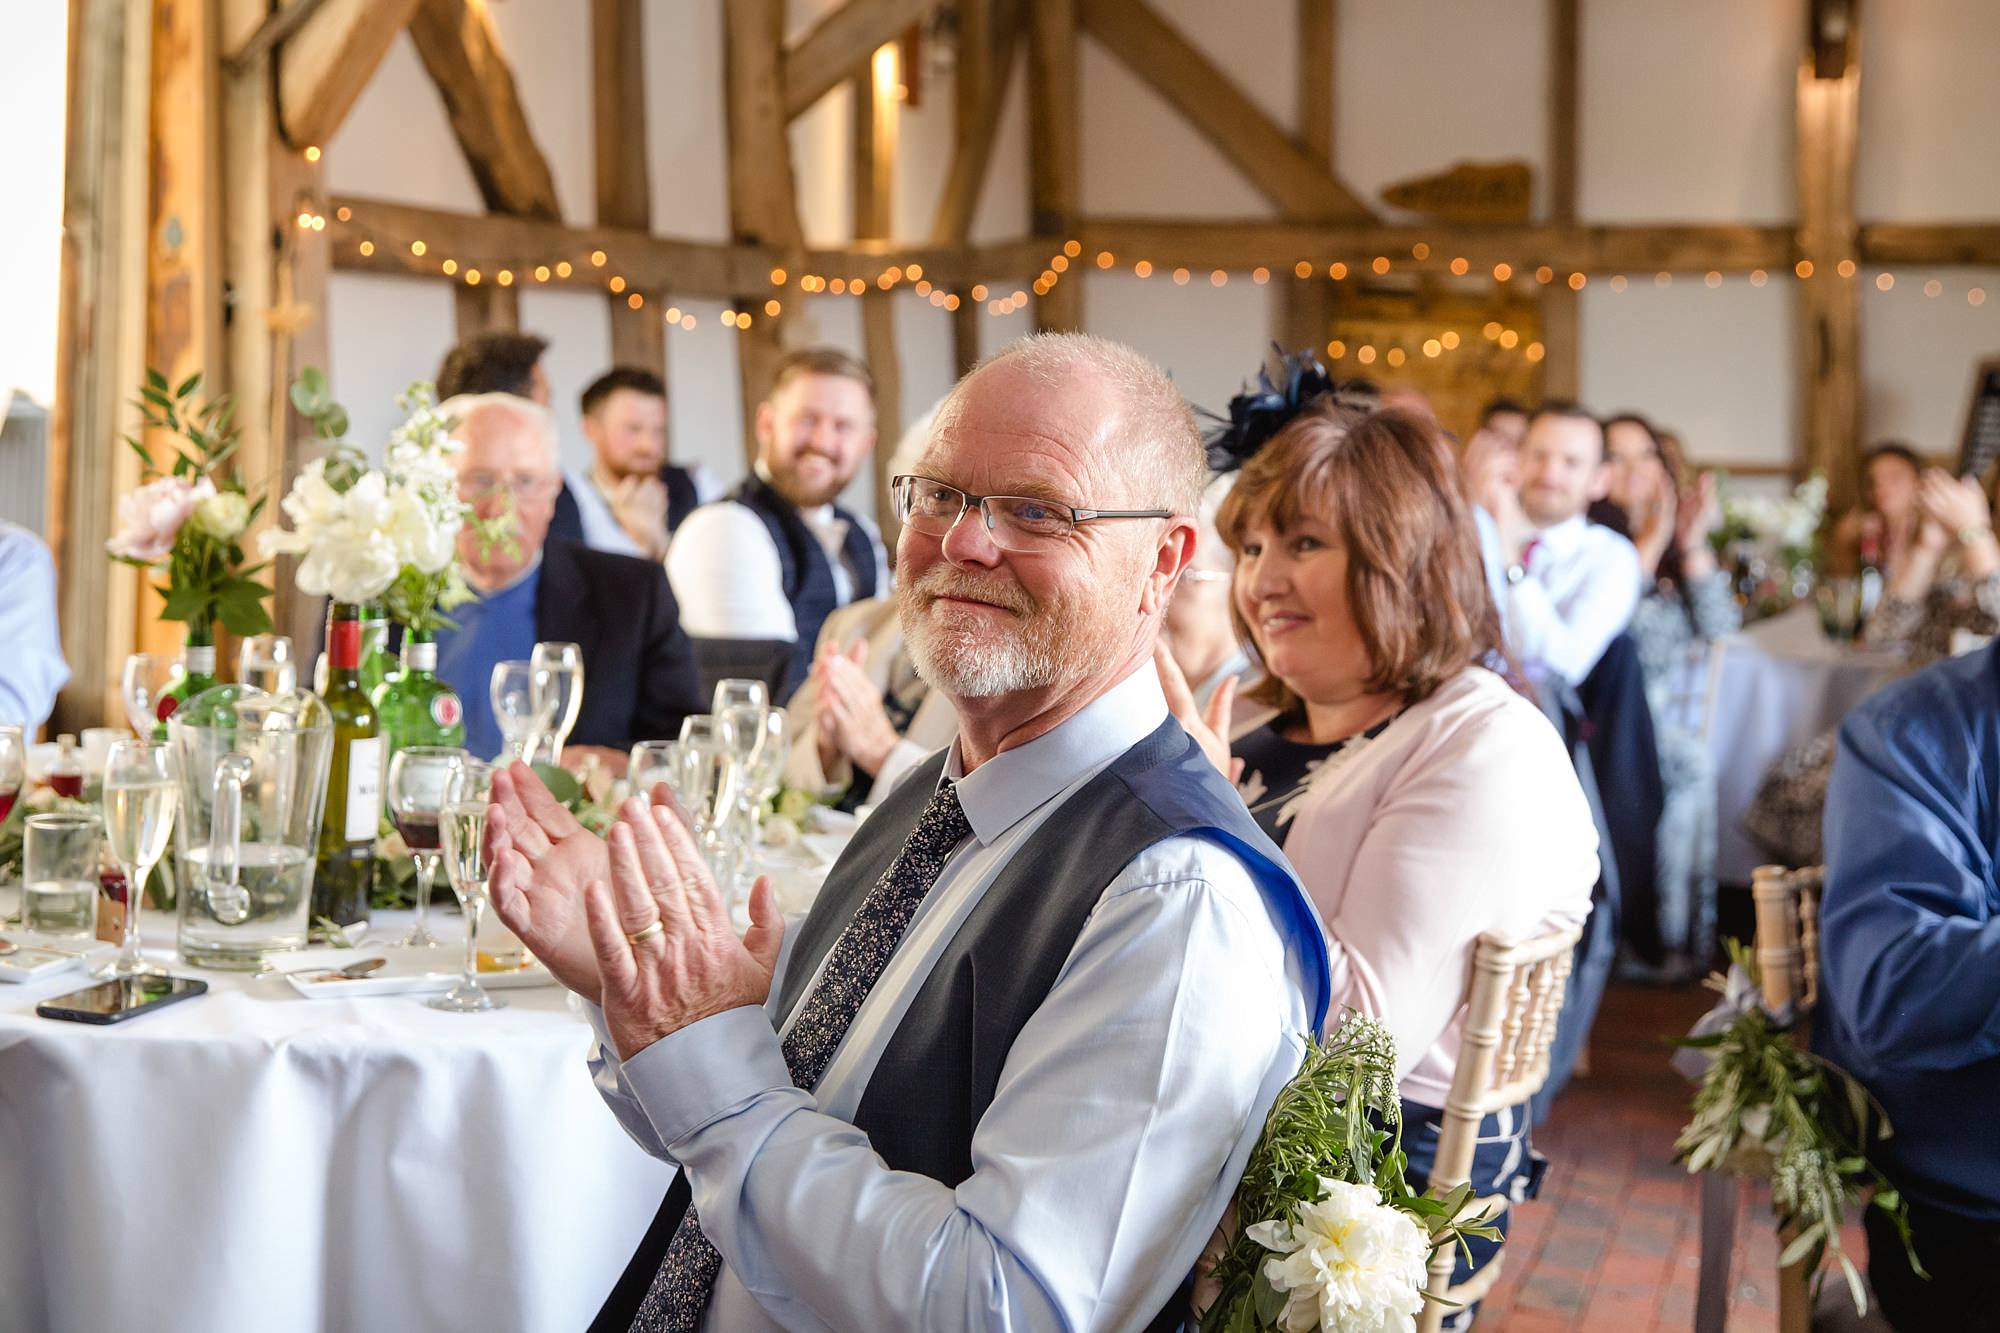 guests clapping after speeches at old greens barn wedding